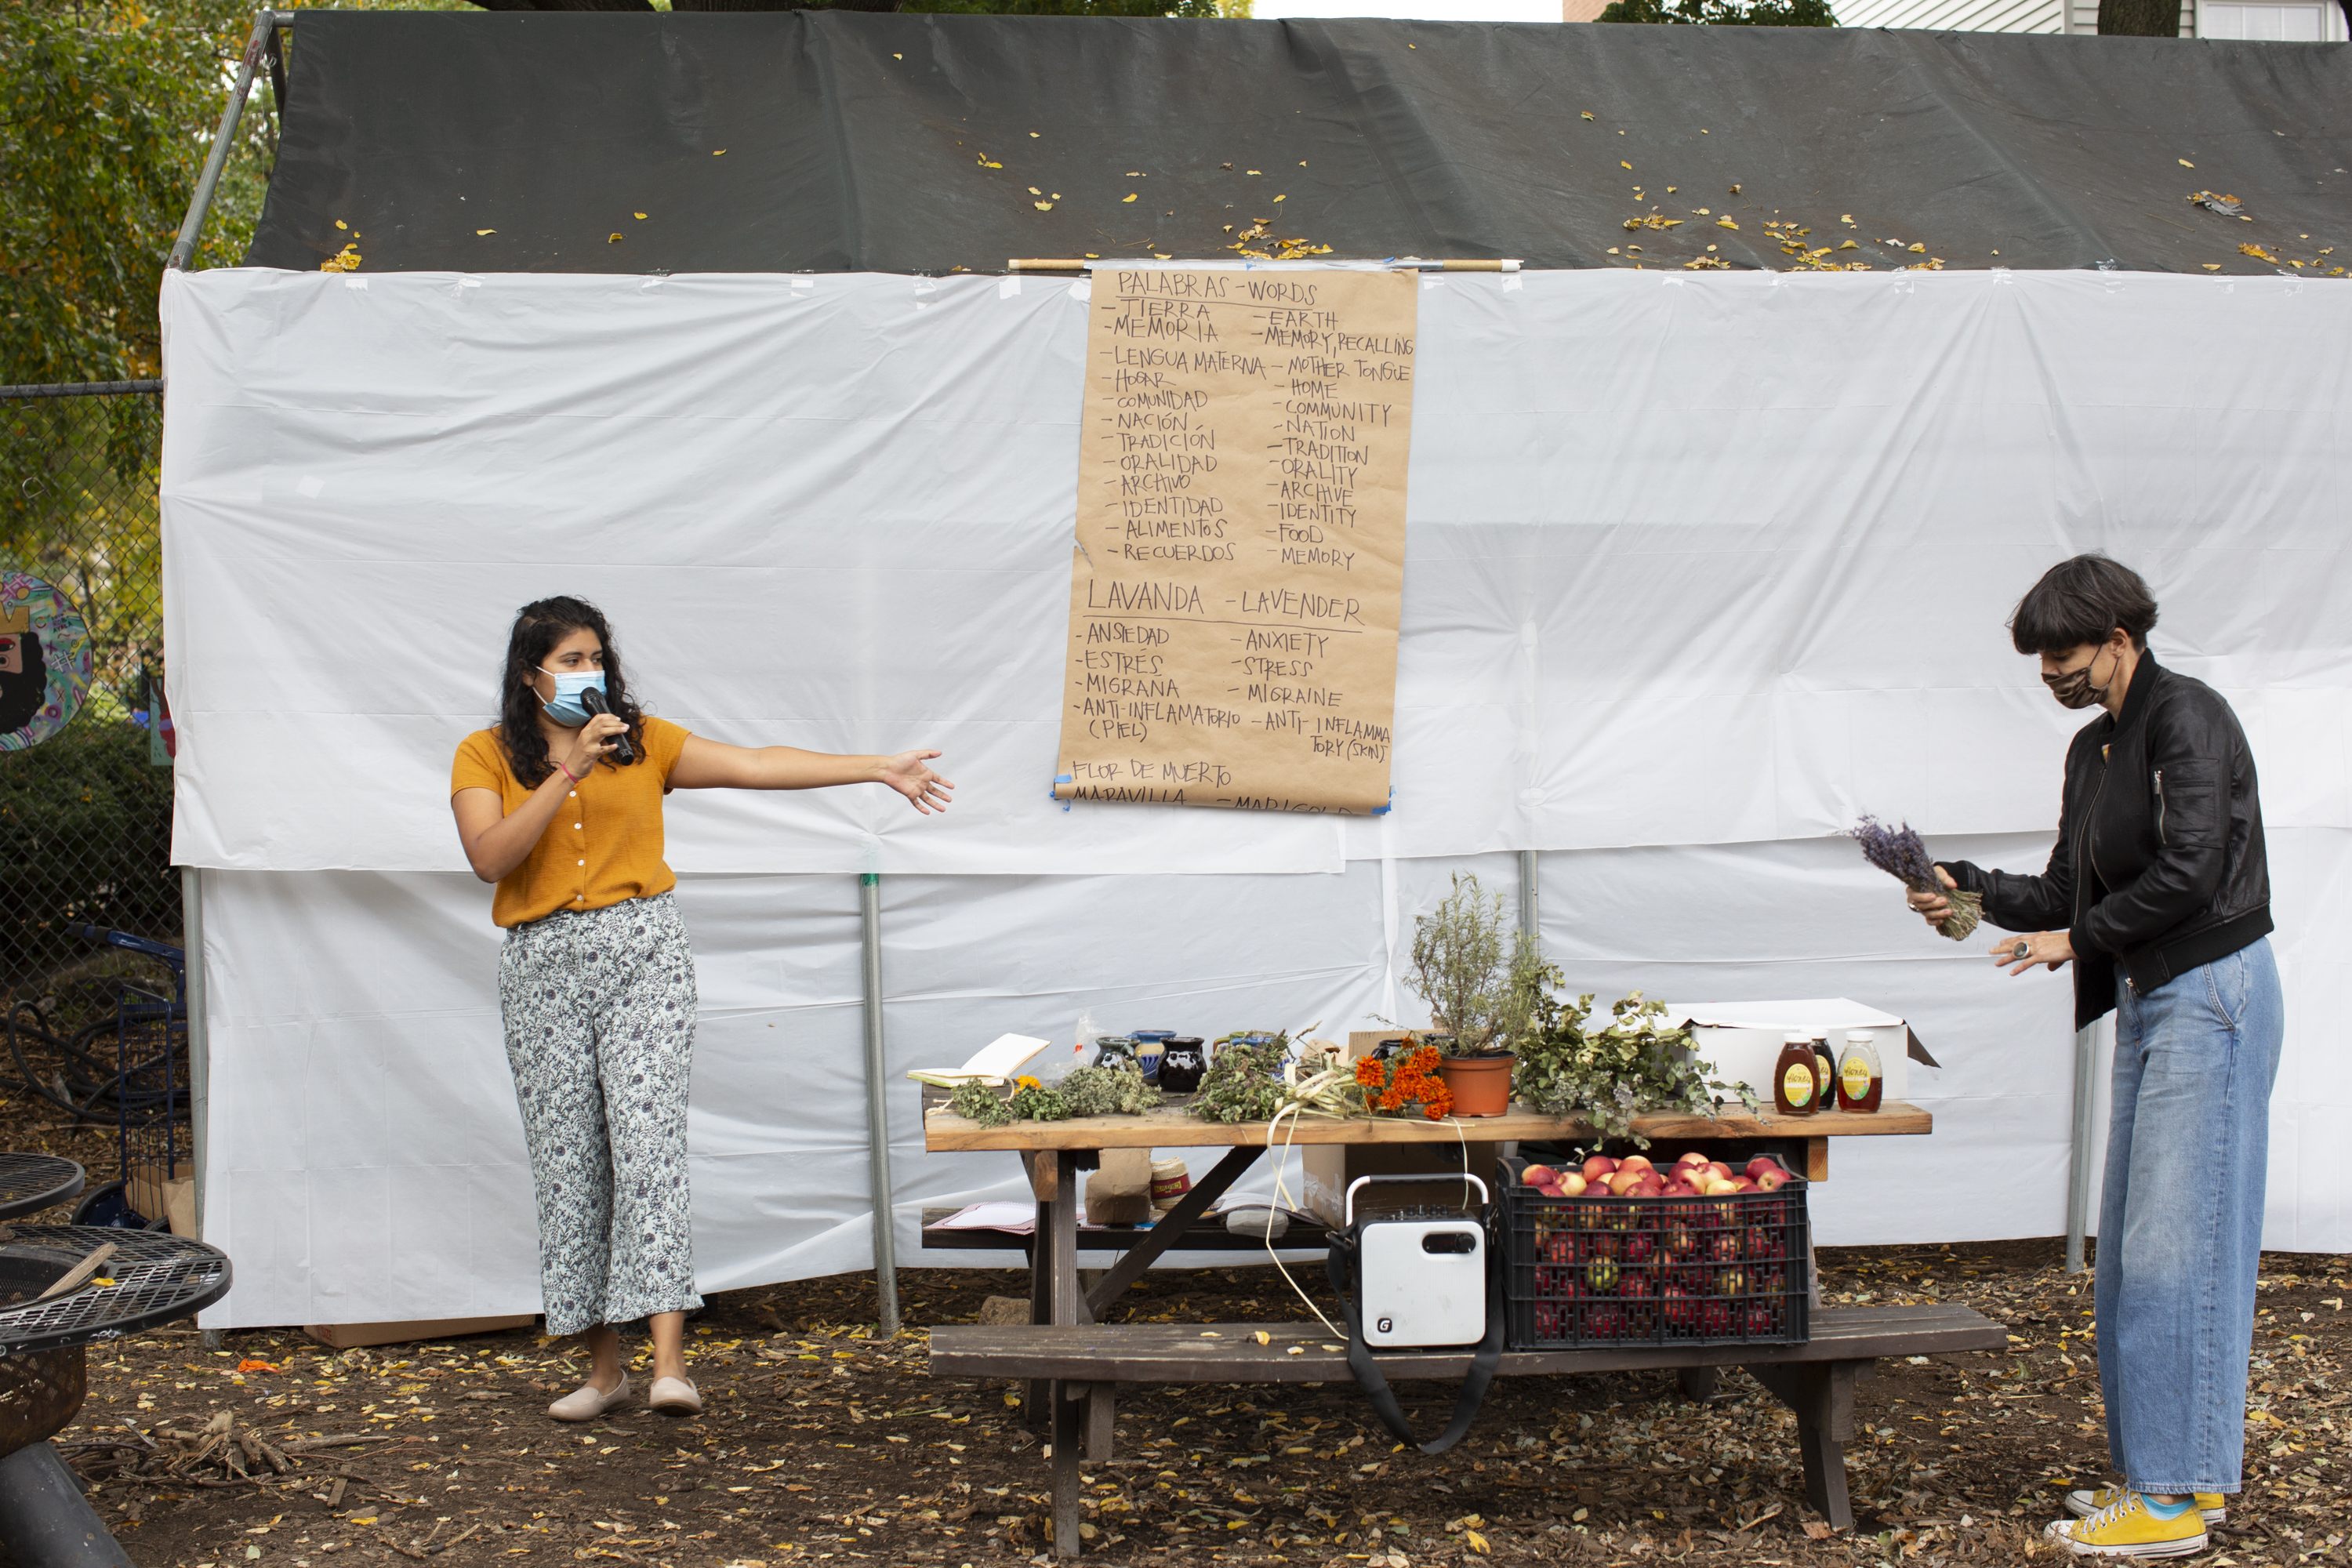 Carolina, wearing an orange shirt, and patterned pants, and Angeles, wearing a black leather jacket and blue jeans, stand in front of the participants of the workshop (out of frame). Angeles has a branch of lavender in her hands; Carolina is speaking using a microphone. Both wear face masks. In the back, a paper kraft board shows a list of words in English and Spanish that Carolina uses as part of the activity (for instance––tierra/earth; memoria/memory, recalling; lengua materna/mother tongue). The table showcases the different plants participants will learn about during the workshop, and jars of honey. There is also a crate with apples, a box with pan de muerto participants will share at the end, and a speaker. Photo by Cinthya Santos-Briones for Brewing Memories workshop, October 24, 2020.